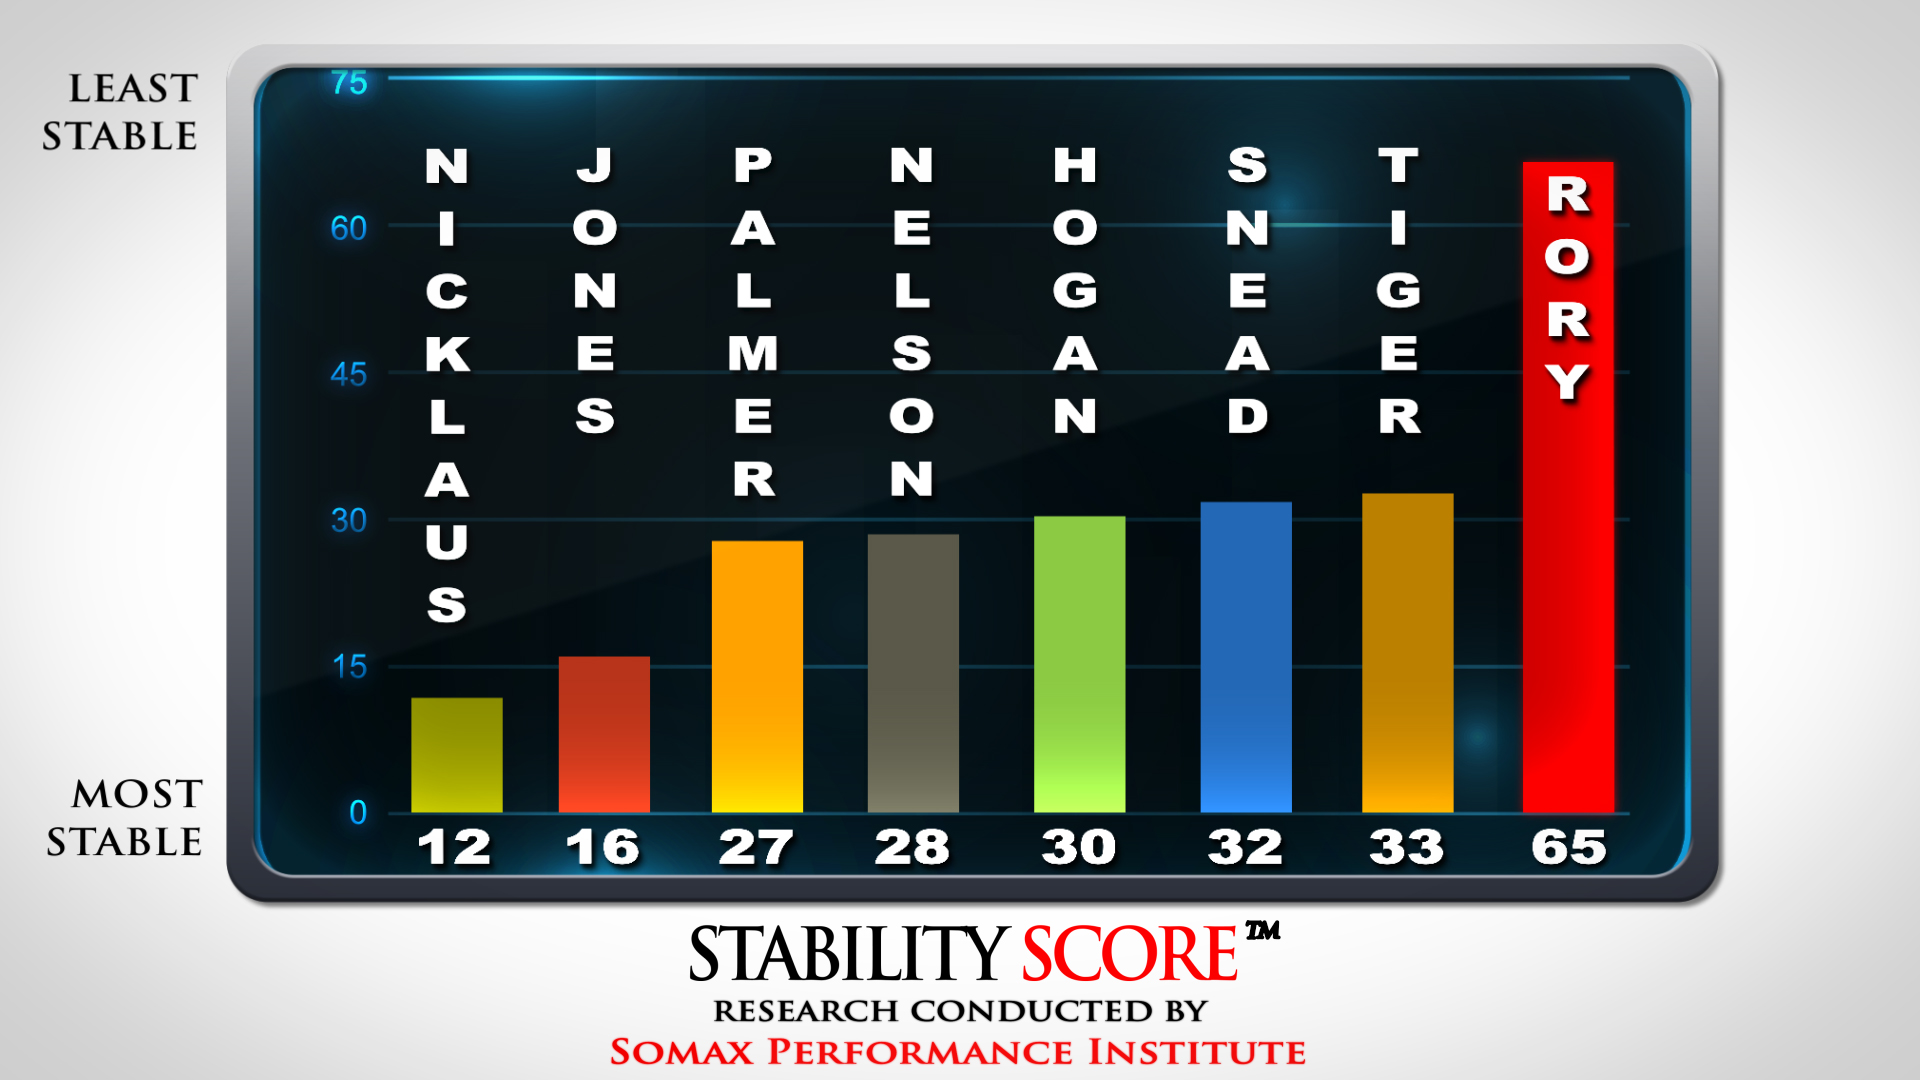 Stability Score™ Infographic